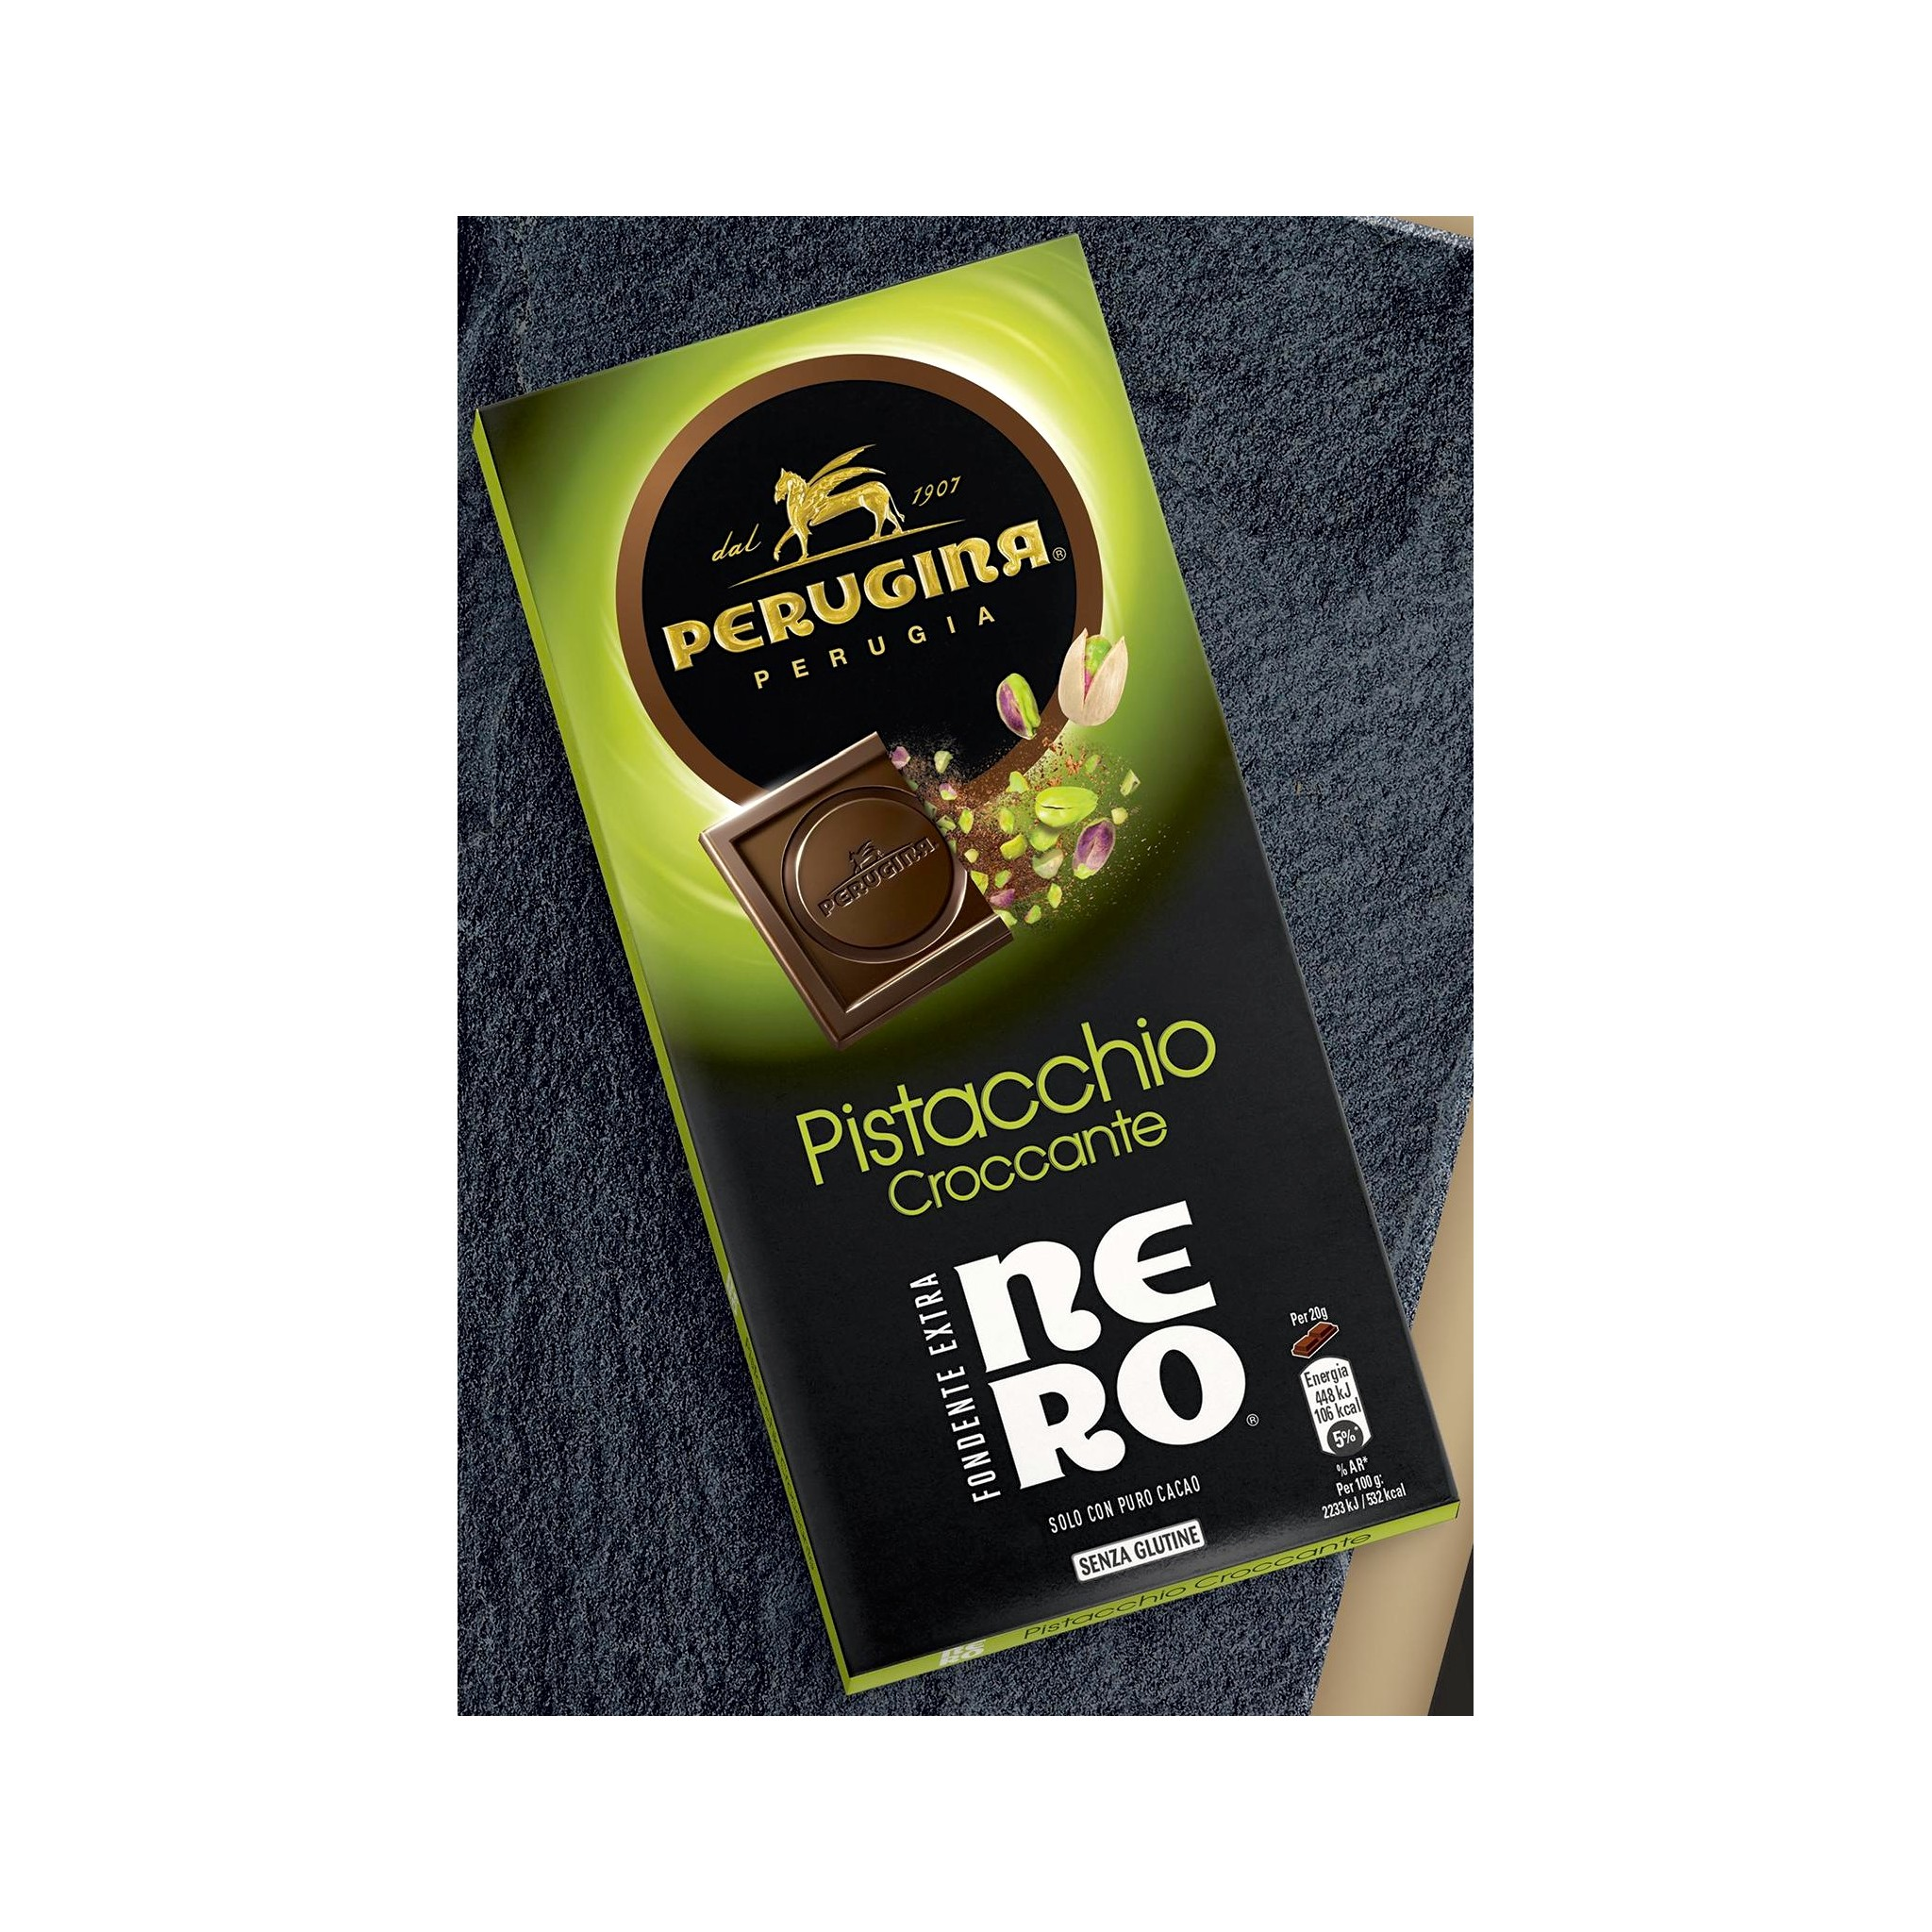 Online Sale Bars Italian Dark Chocolate Perugina Pistachio